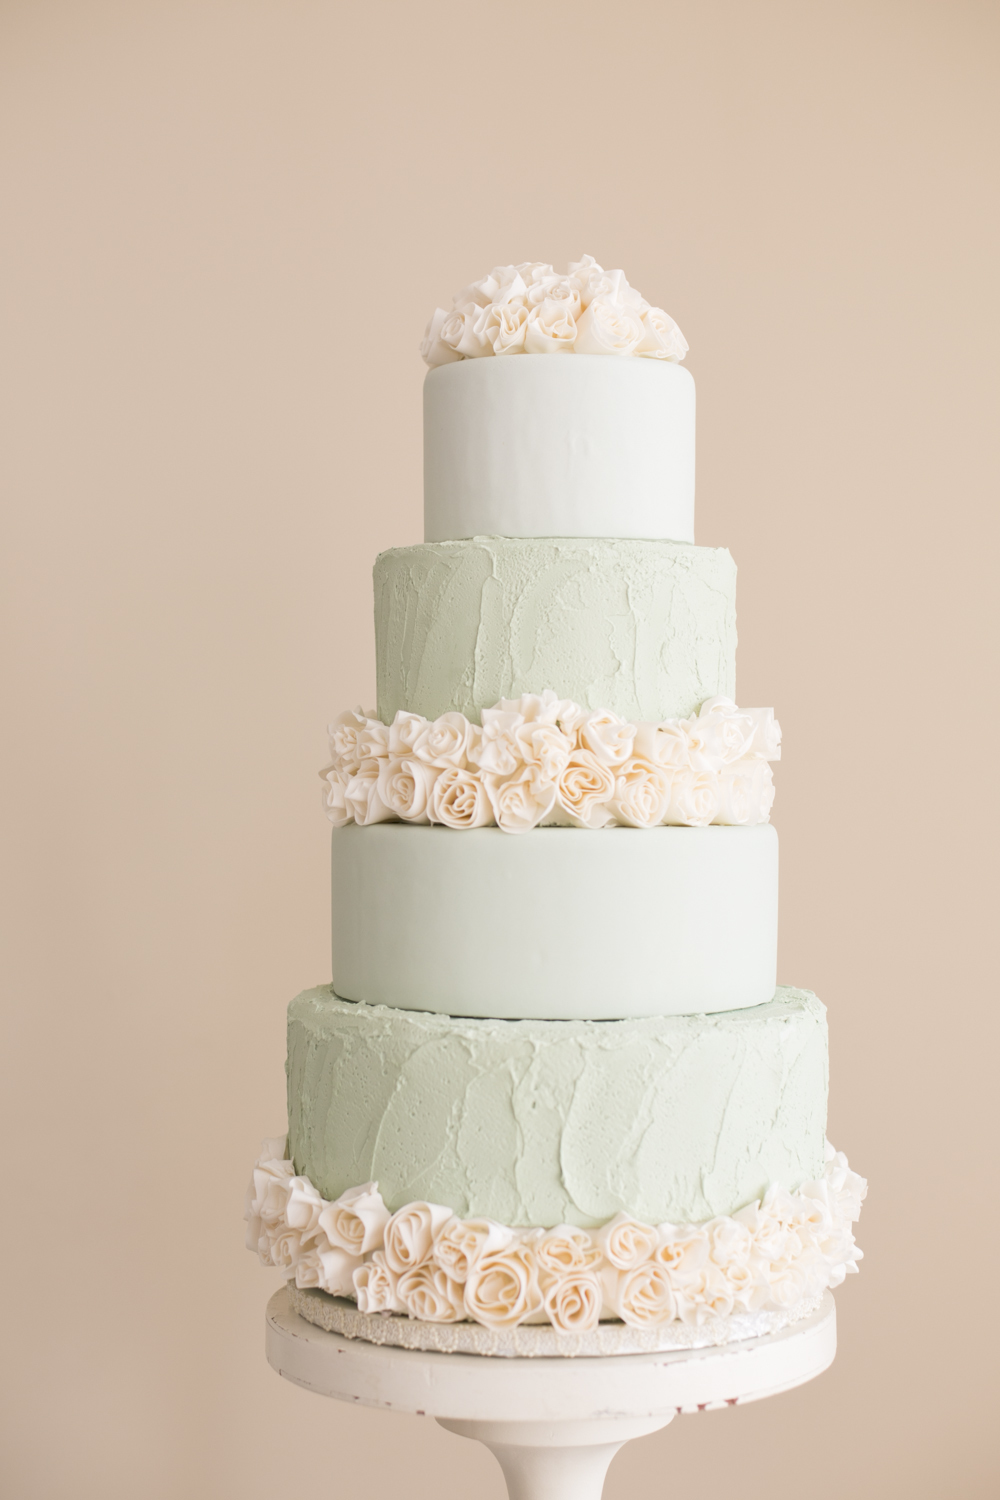 Pastel green and baby pink fondant wedding